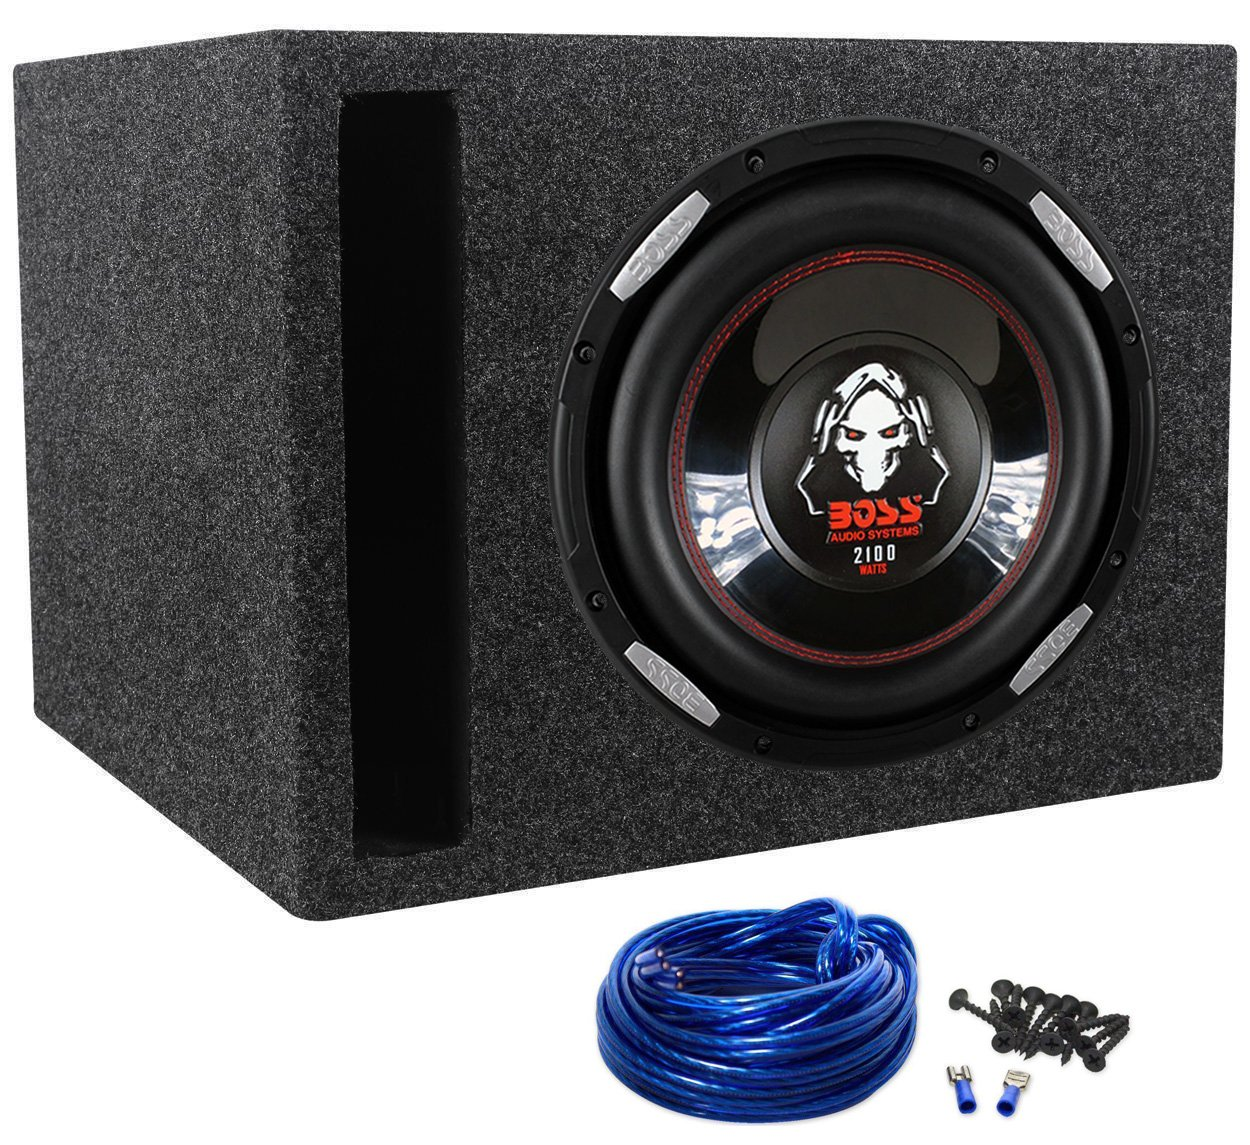 "Package: Boss P106DVC 2100 Watt 10'' Dual 4-Ohm Voice Coil Car Subwoofer + Rockville RSV10 Single 10"" Vented Subwoofer Enclosure + Single Enclosure Wire Kit With 14 Gauge Speaker Wire + Screws + Spade Terminals"